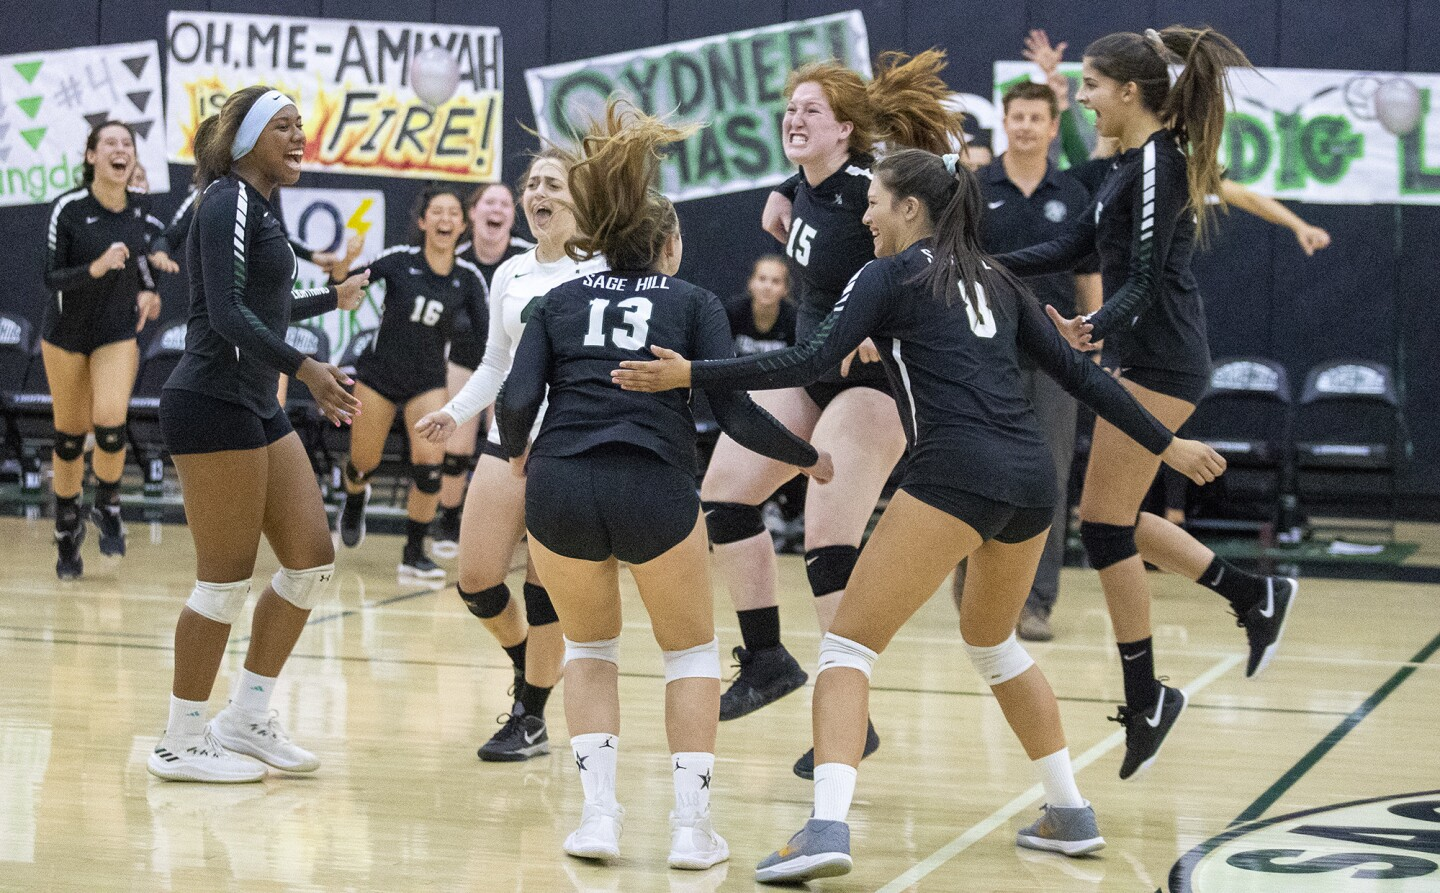 Photo Gallery: Sage Hill vs. St. Margaret's in girls' volleyball